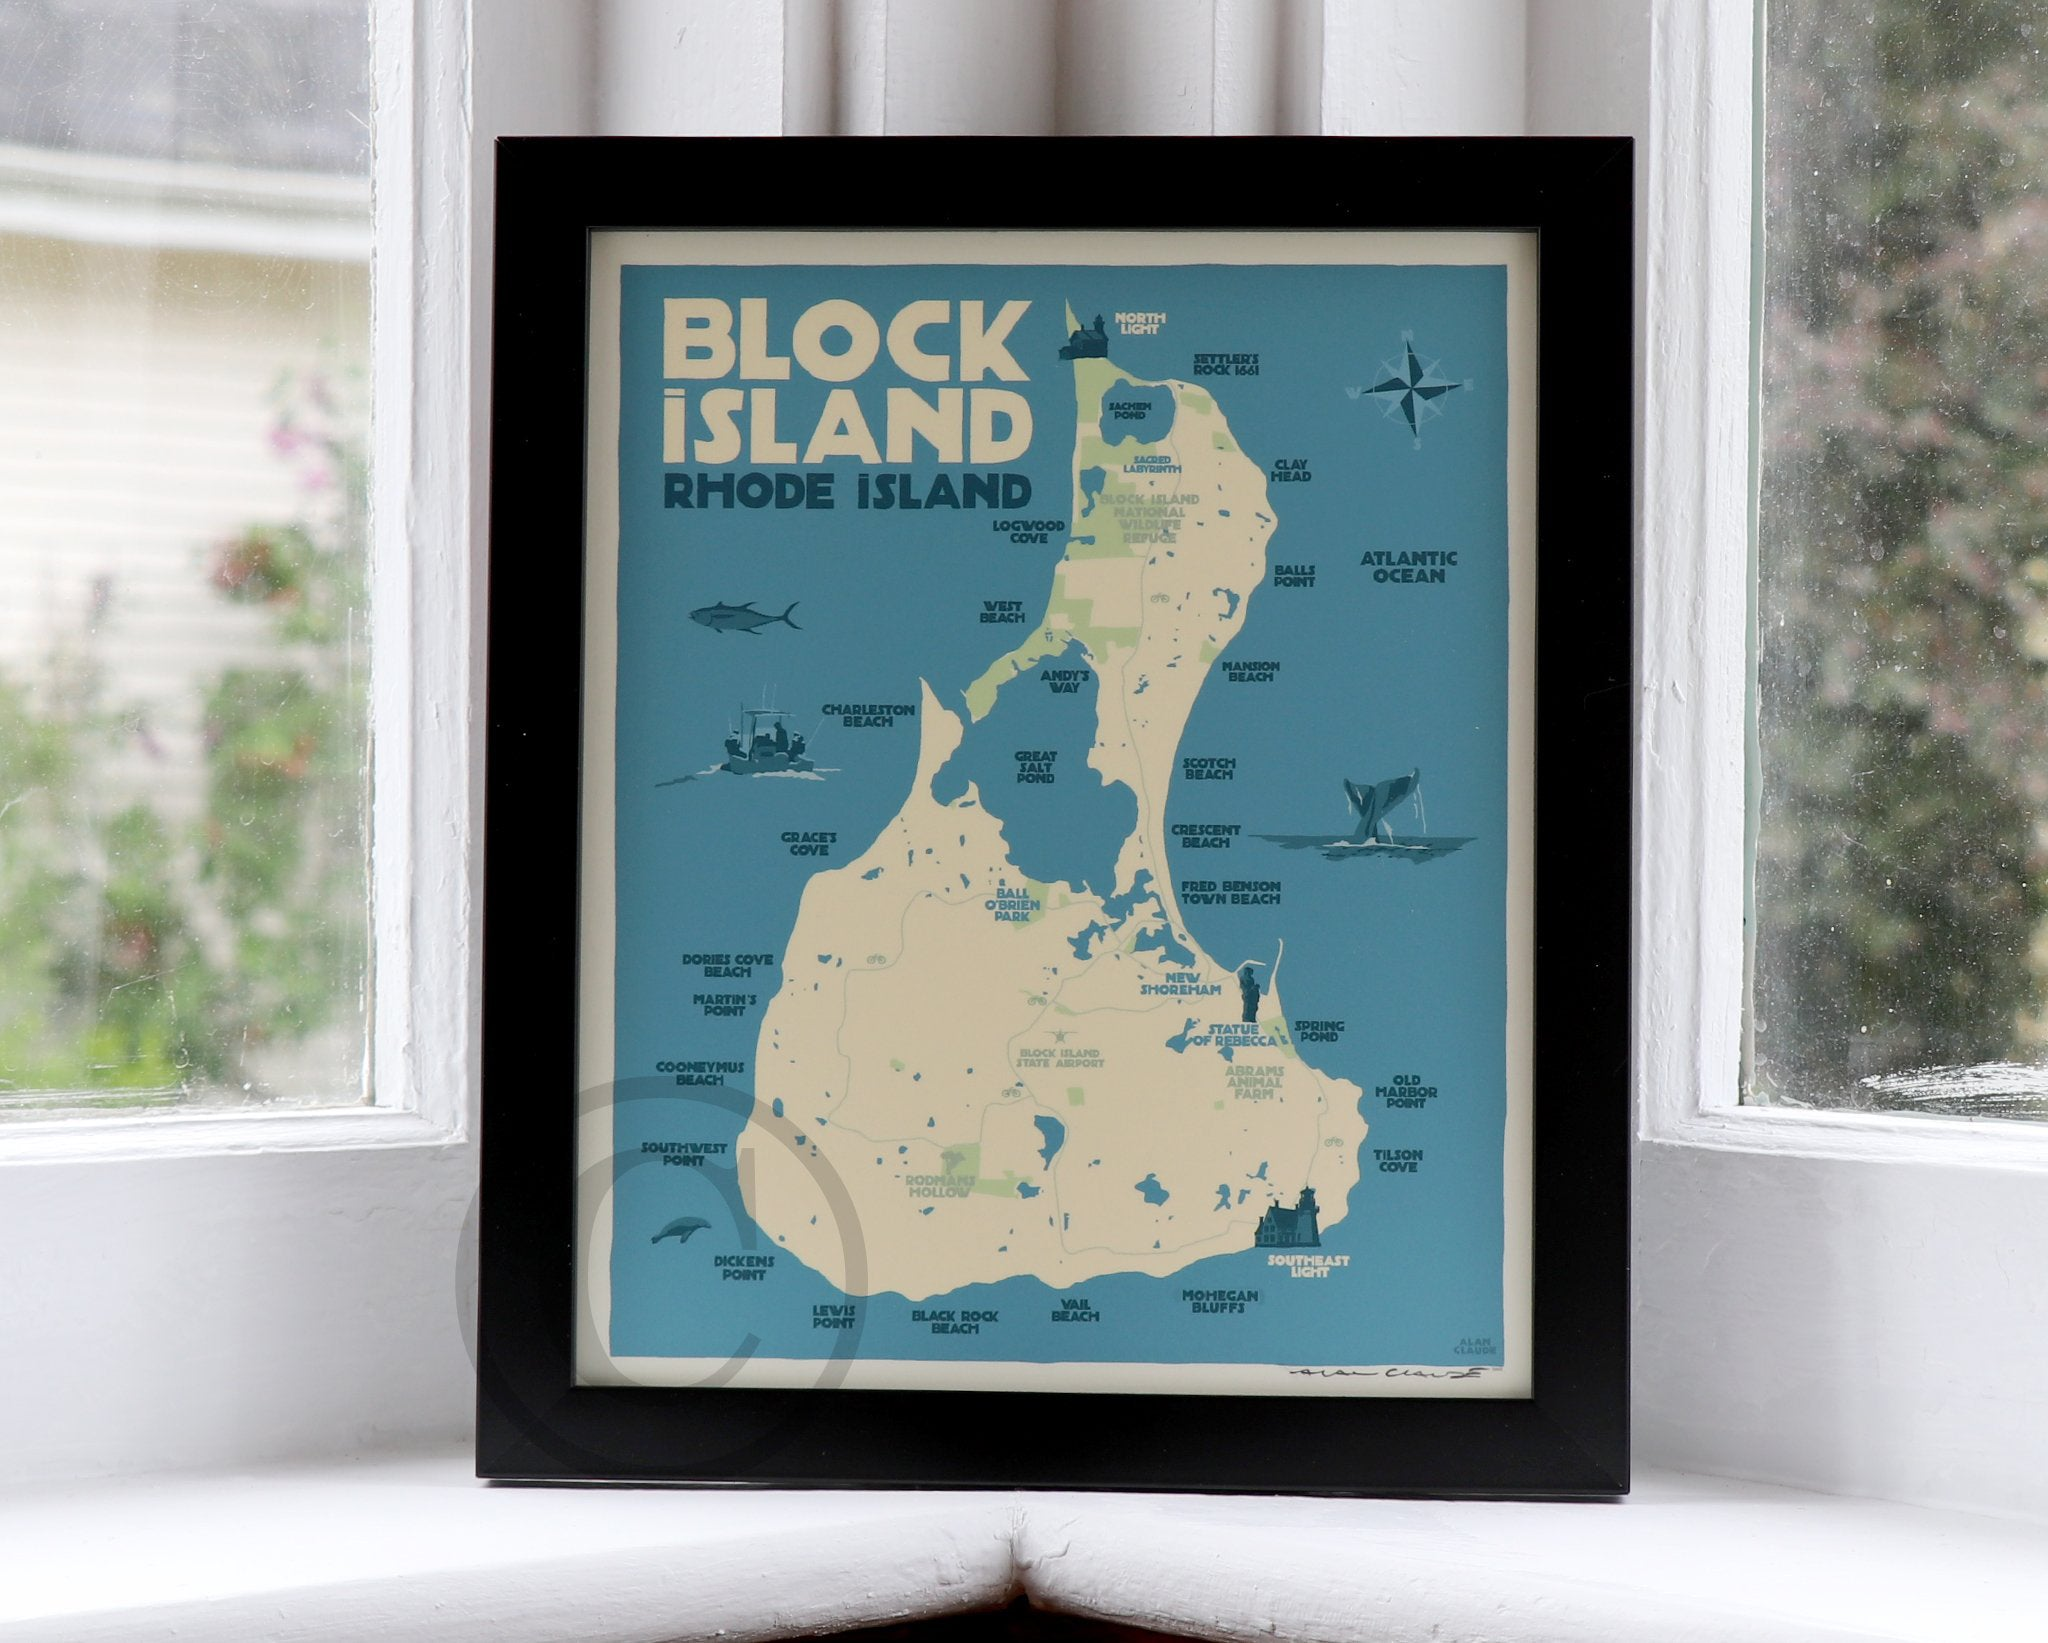 "Block Island Map Art Print 8"" x 10"" Framed Wall Poster - Rhode Island"